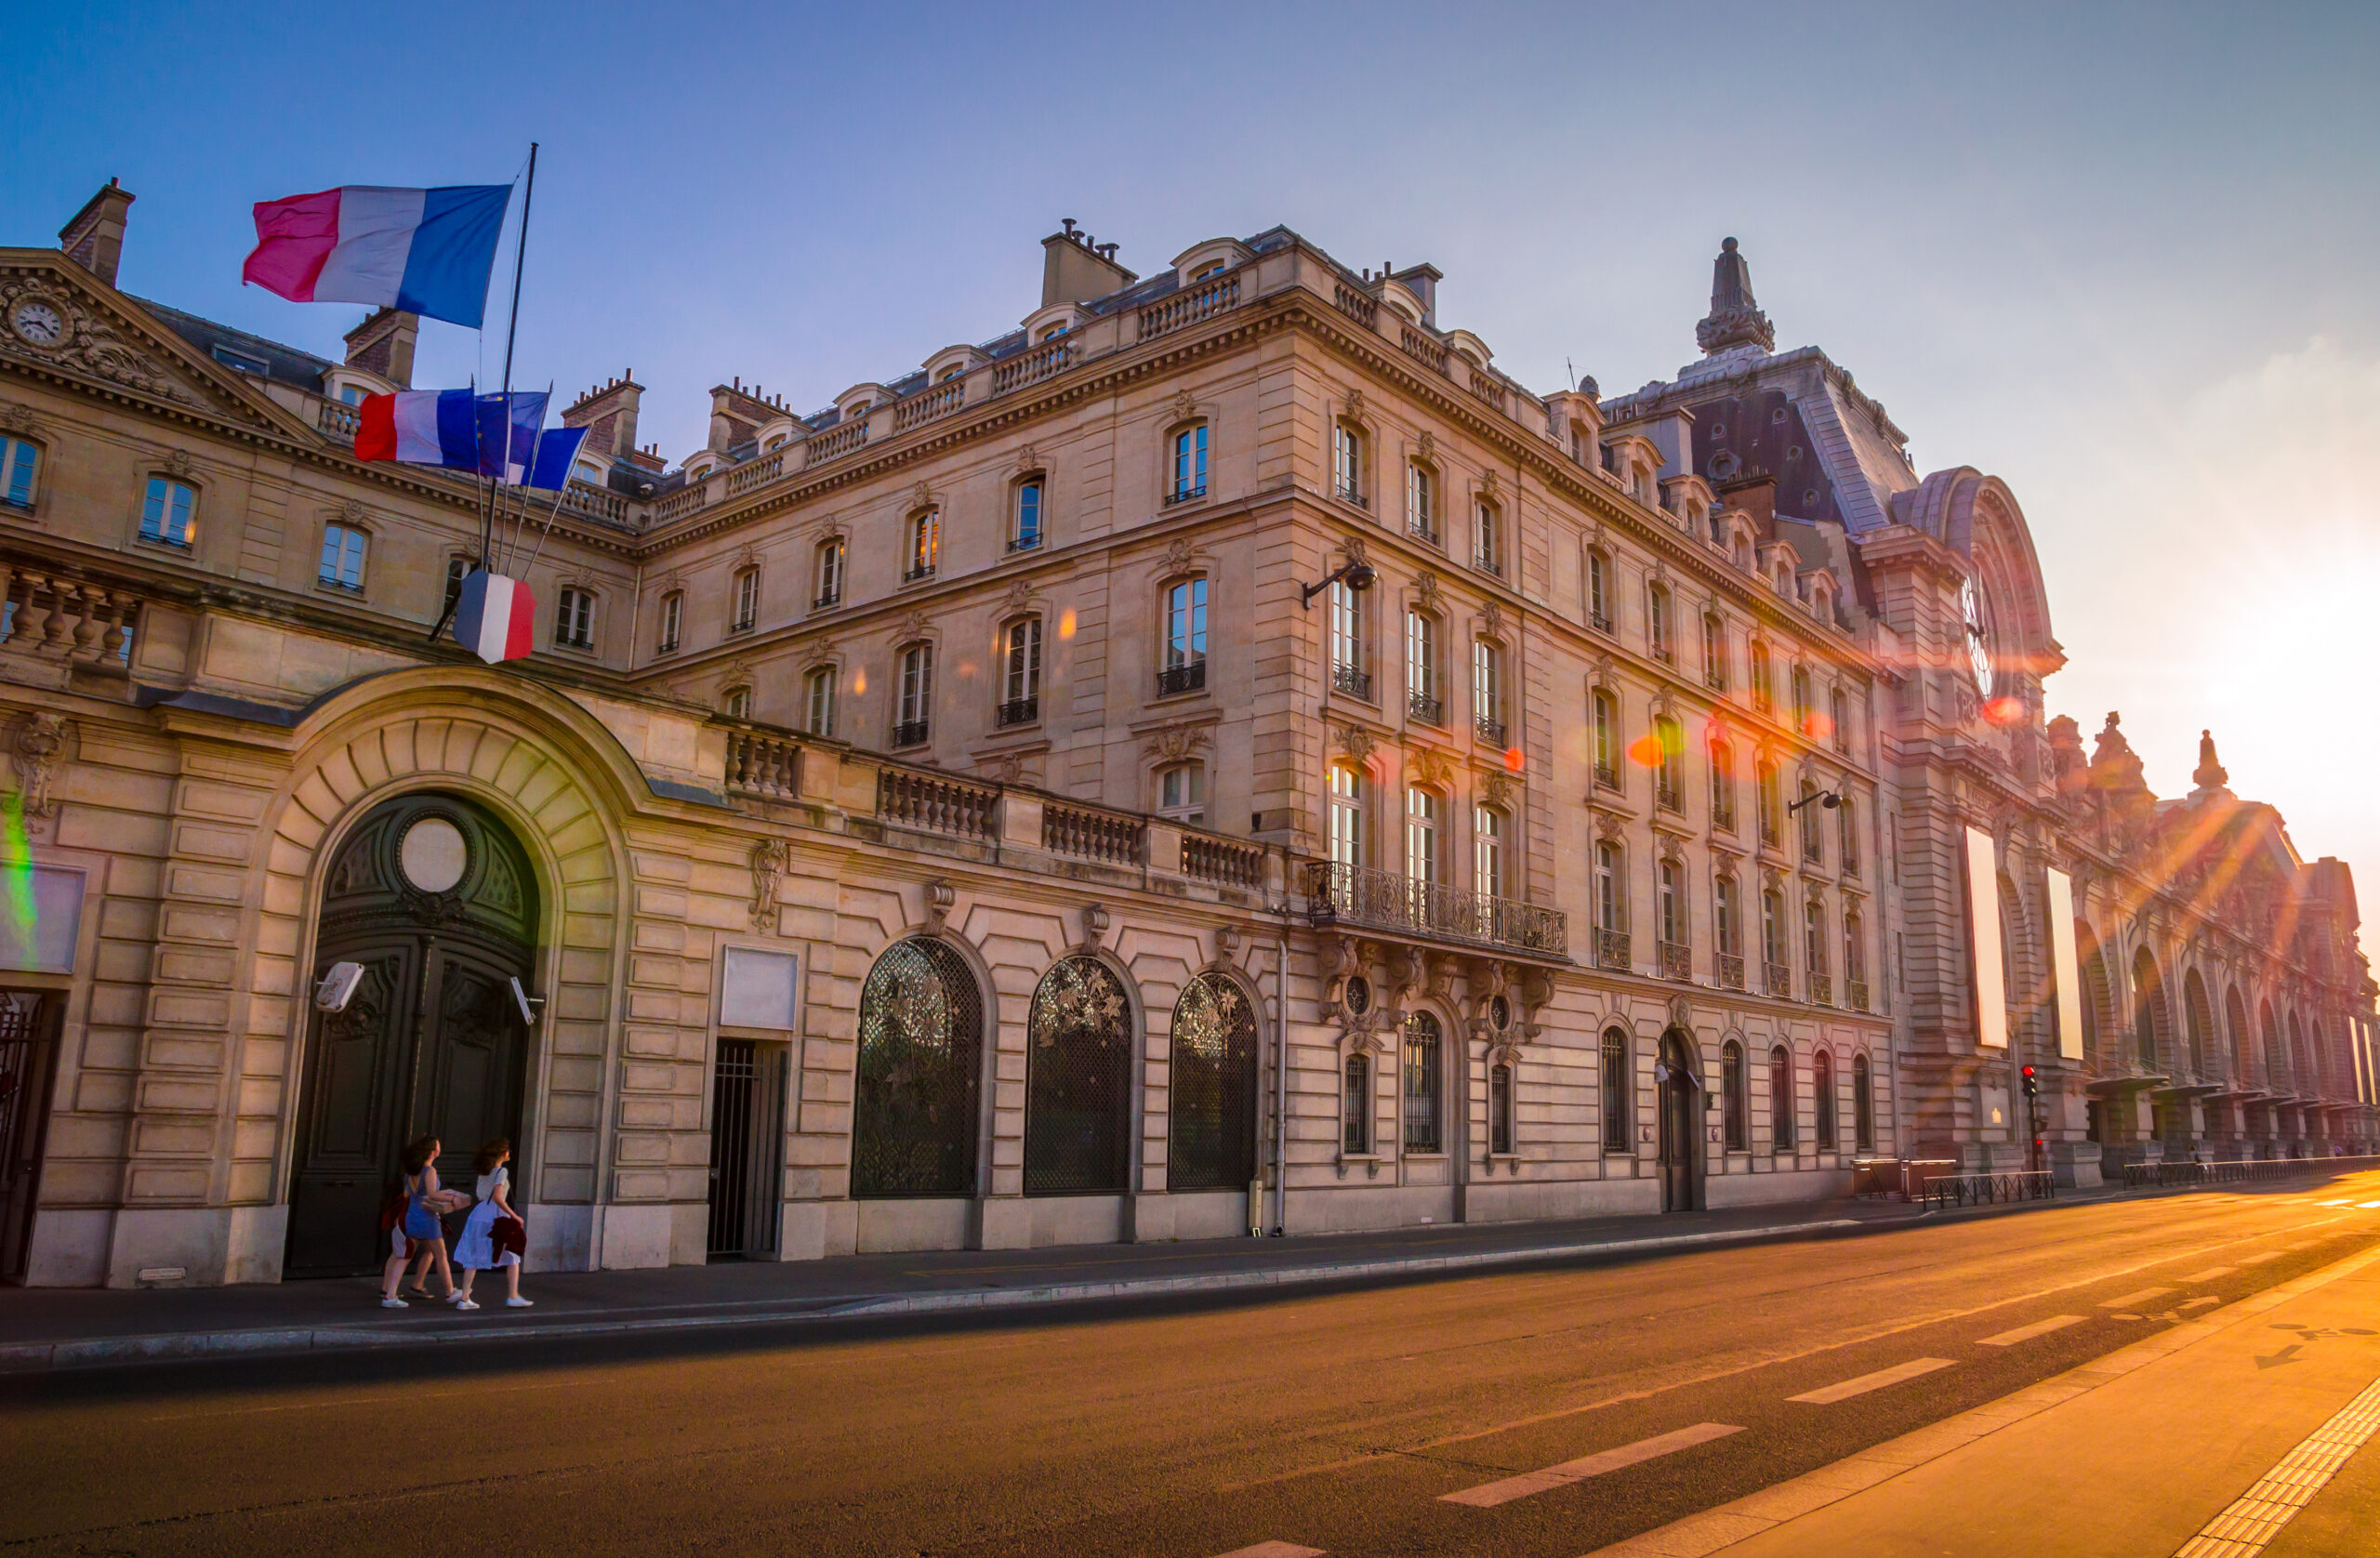 Virtual Museum Tour of Sunset view of Orsay Museum on left bank of Seine, Paris, France.